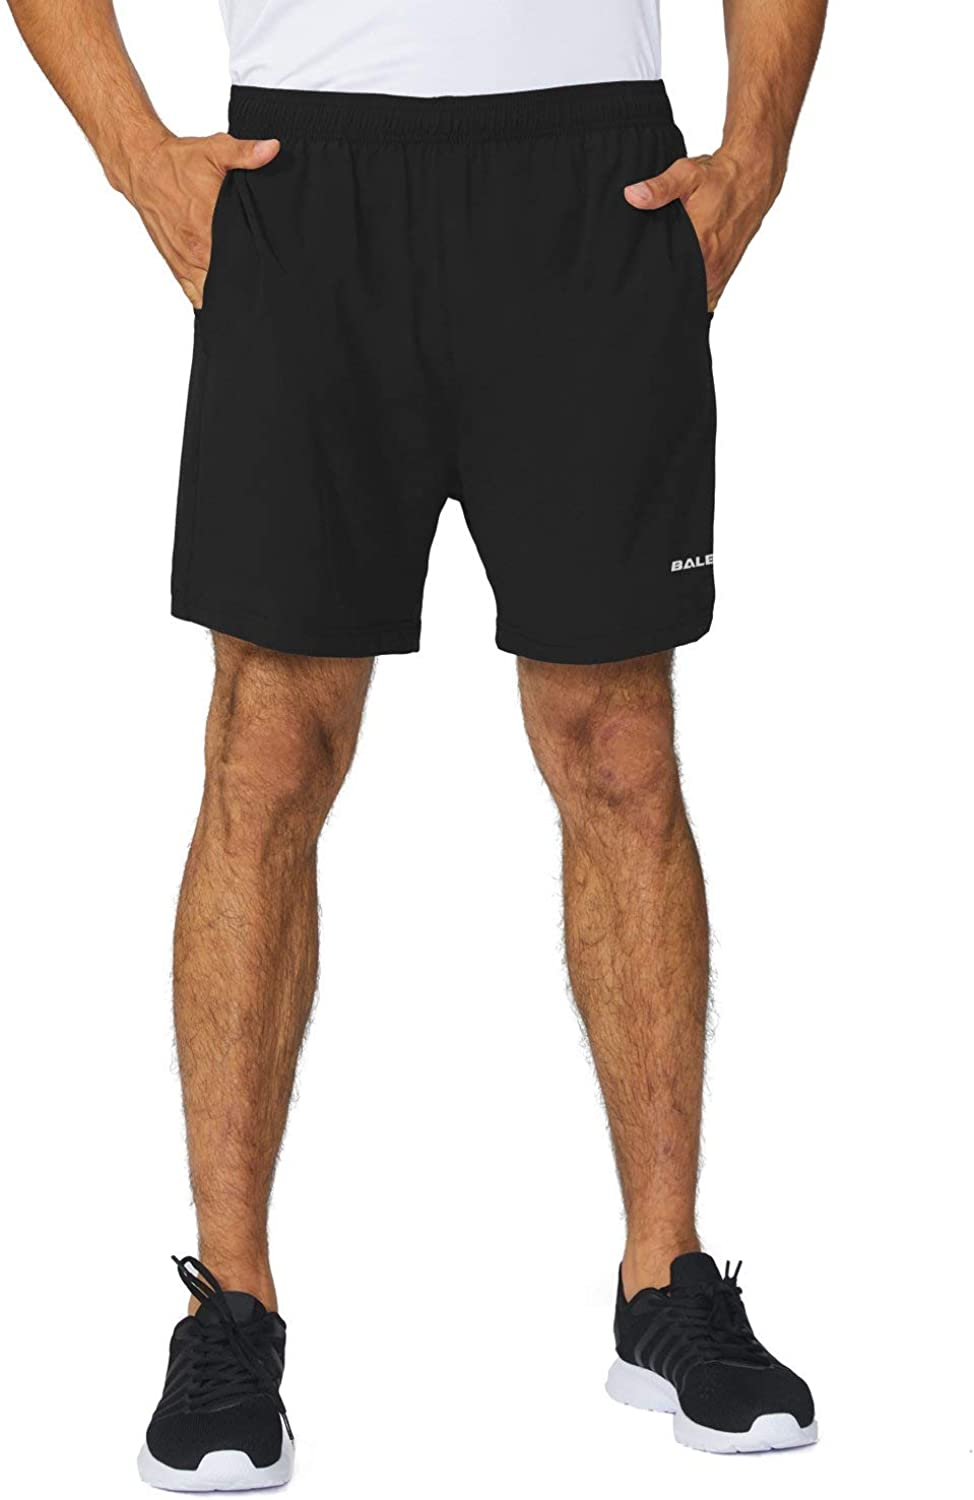 BALEAF Men's 5 Inches Running Athletic Shorts Zipper Pocket : Clothing